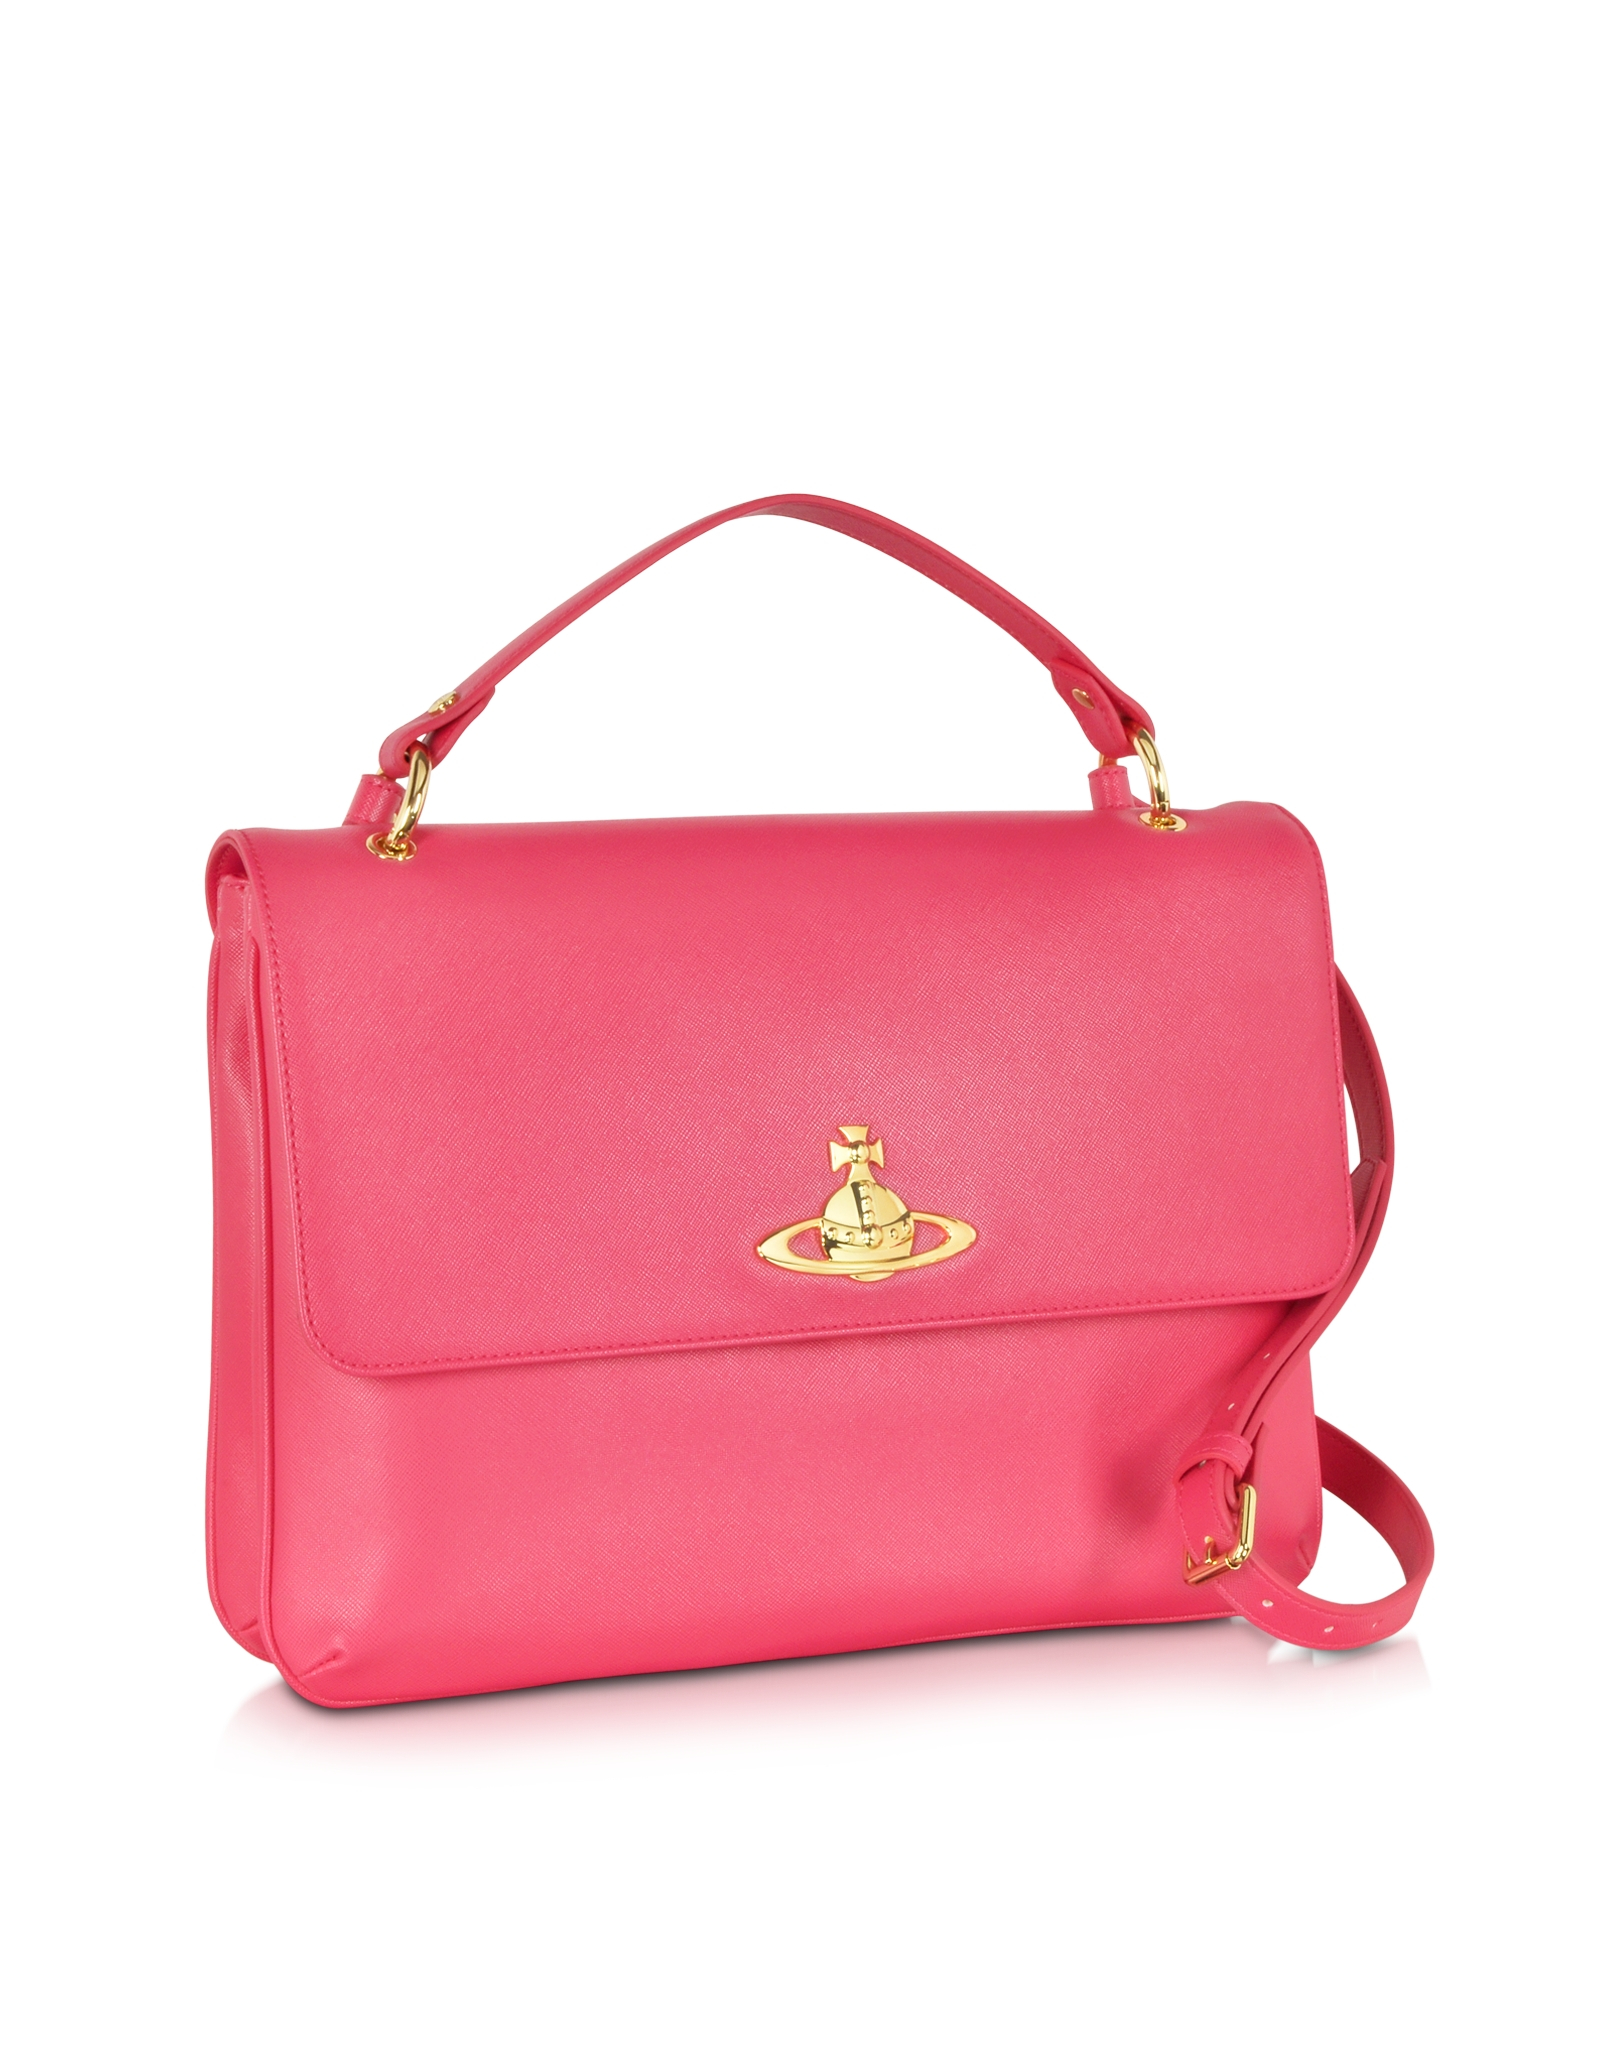 6266008d2d Vivienne Westwood Divina Coral Eco-Leather Crossbody Bag in Pink - Lyst